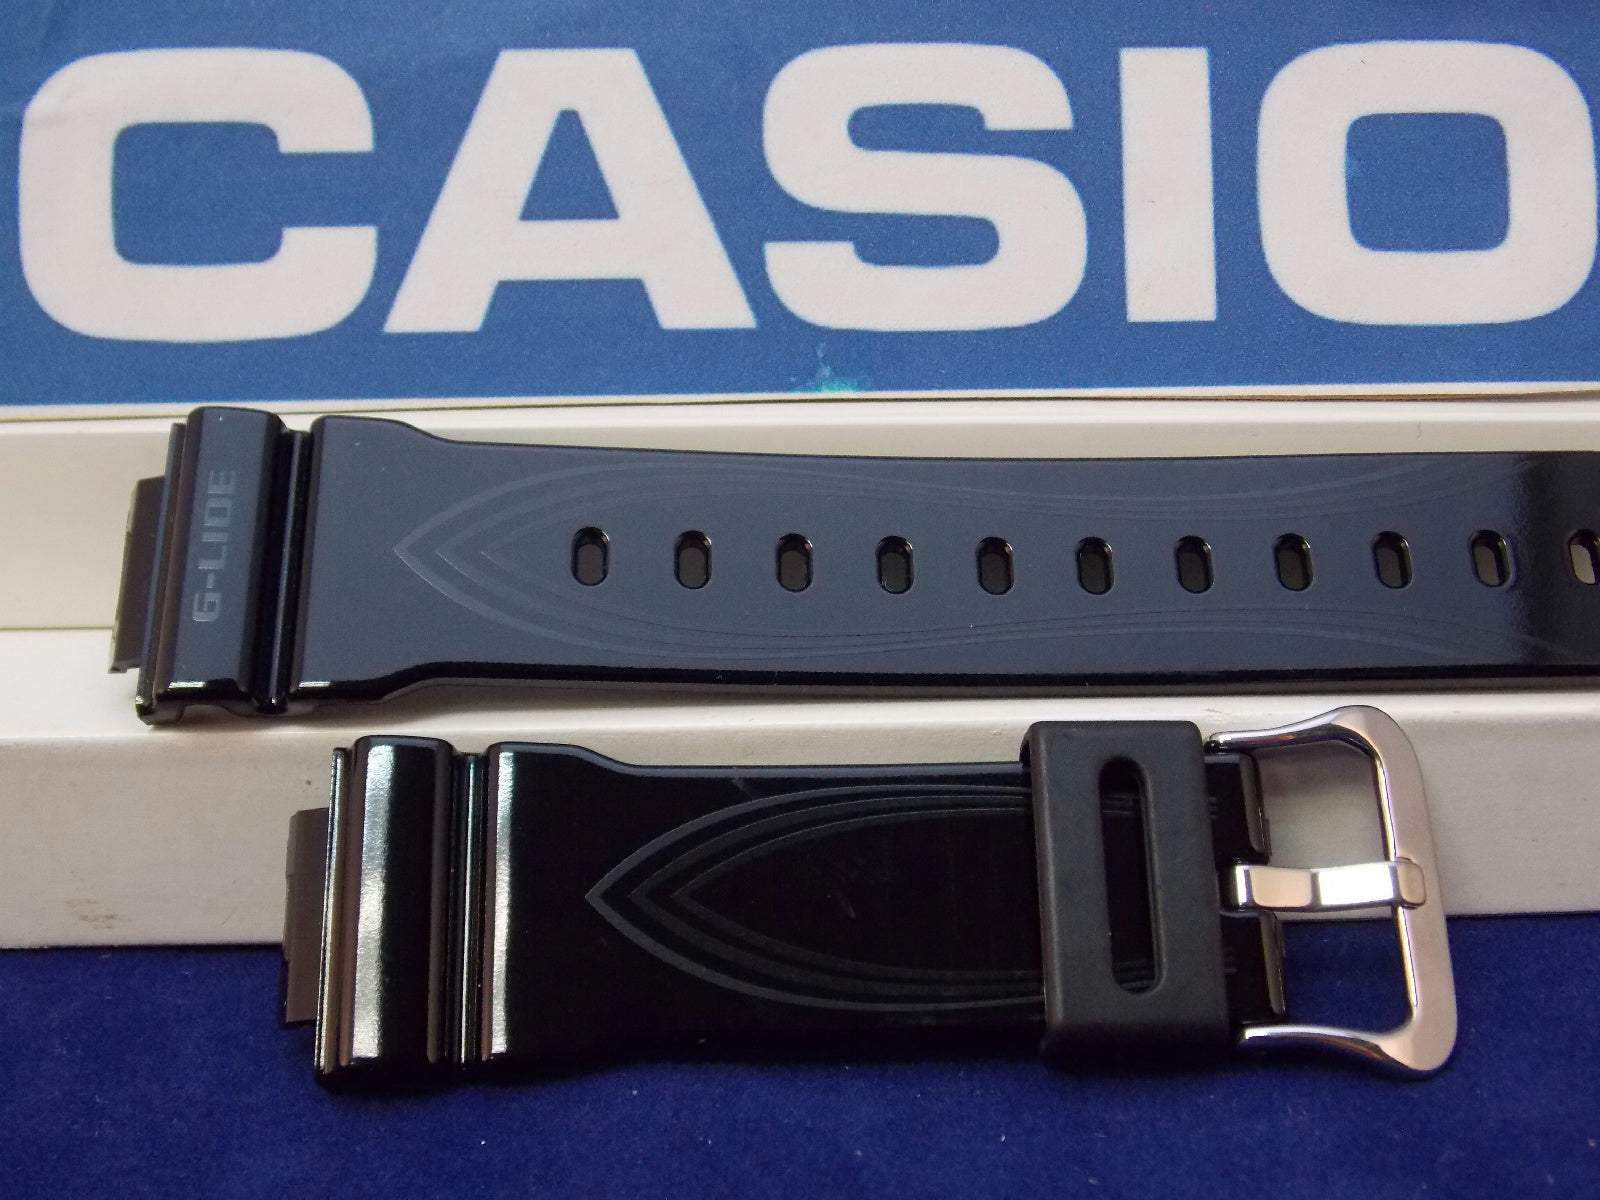 Casio watchband GLX-5600 G-Lide Shiny Black Resin w/Graphics. . Watchband